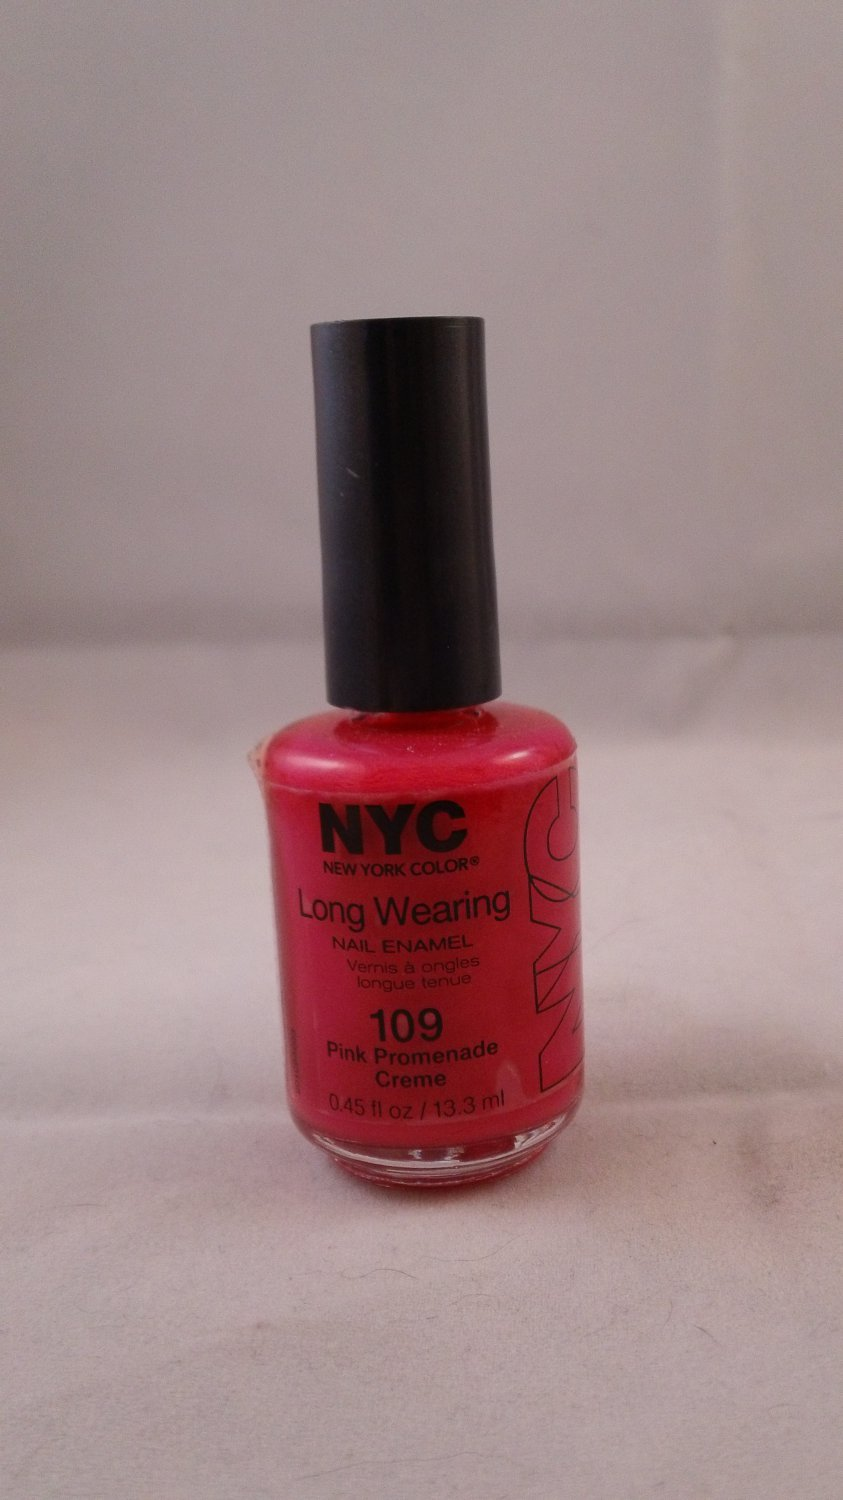 NYC New York Color Long Wearing Nail Enamel Lacquer Polish #109 Pink Promenade Creme